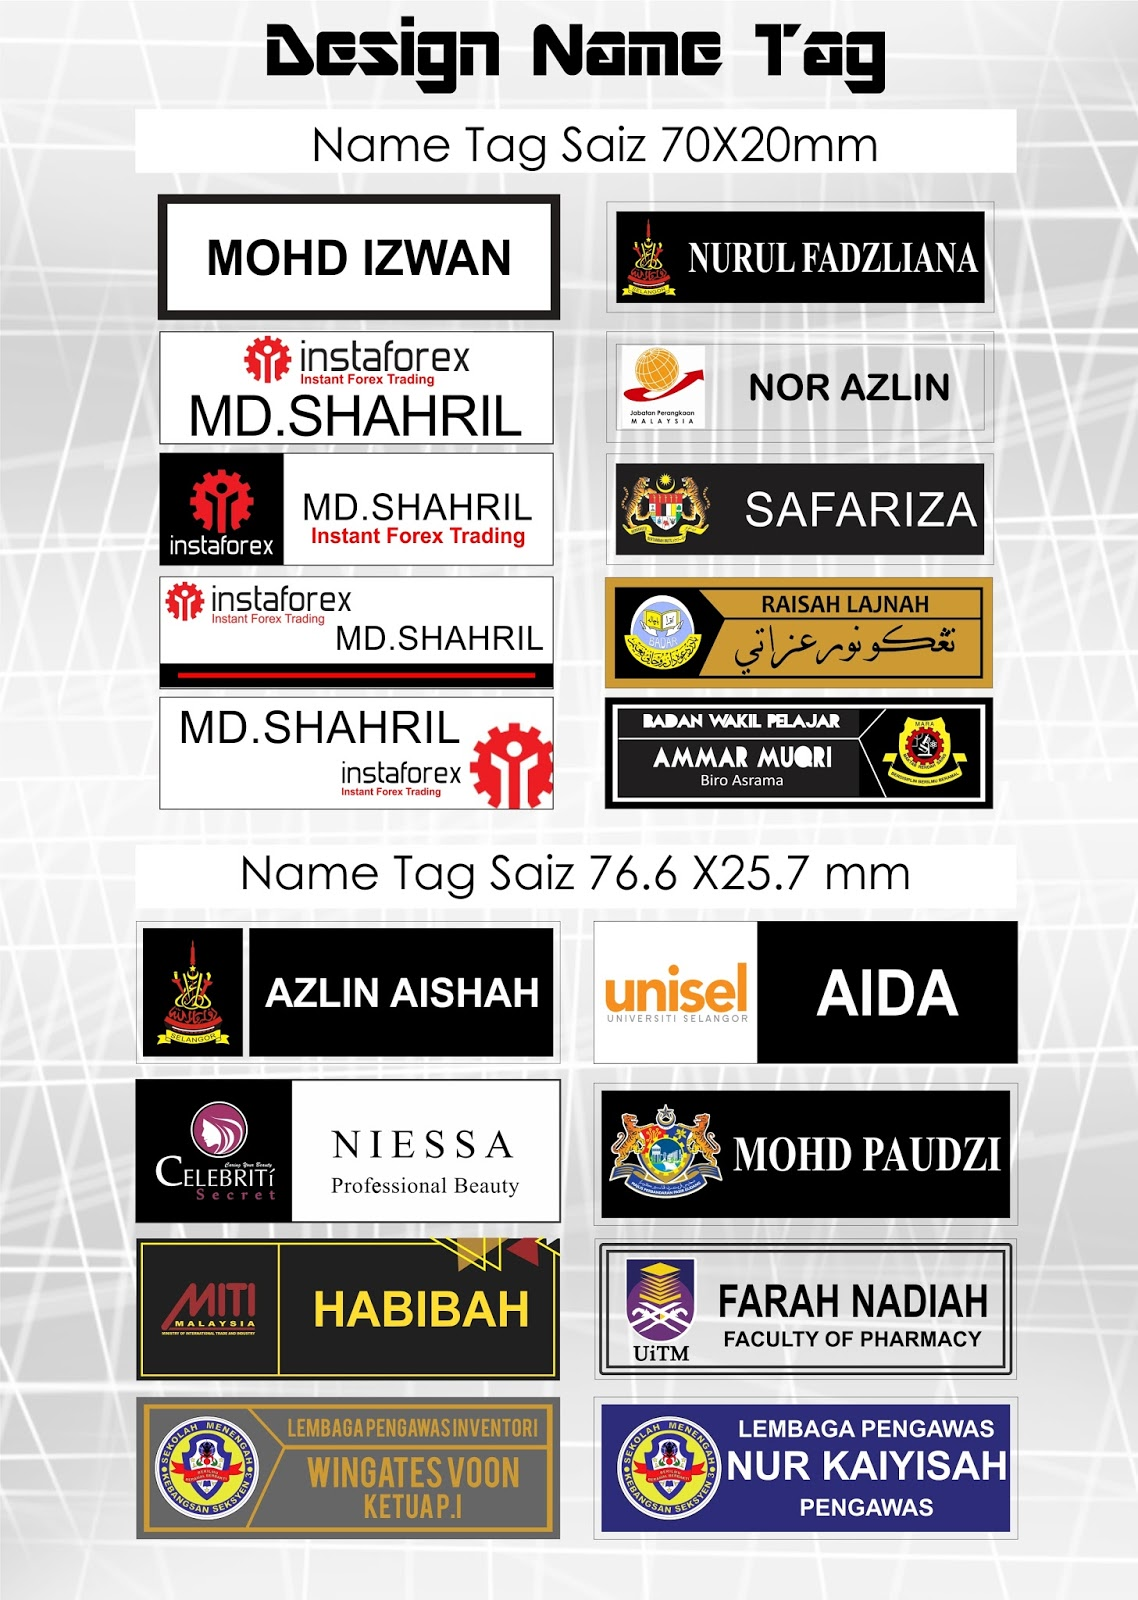 name tag supplier malaysia design name tag